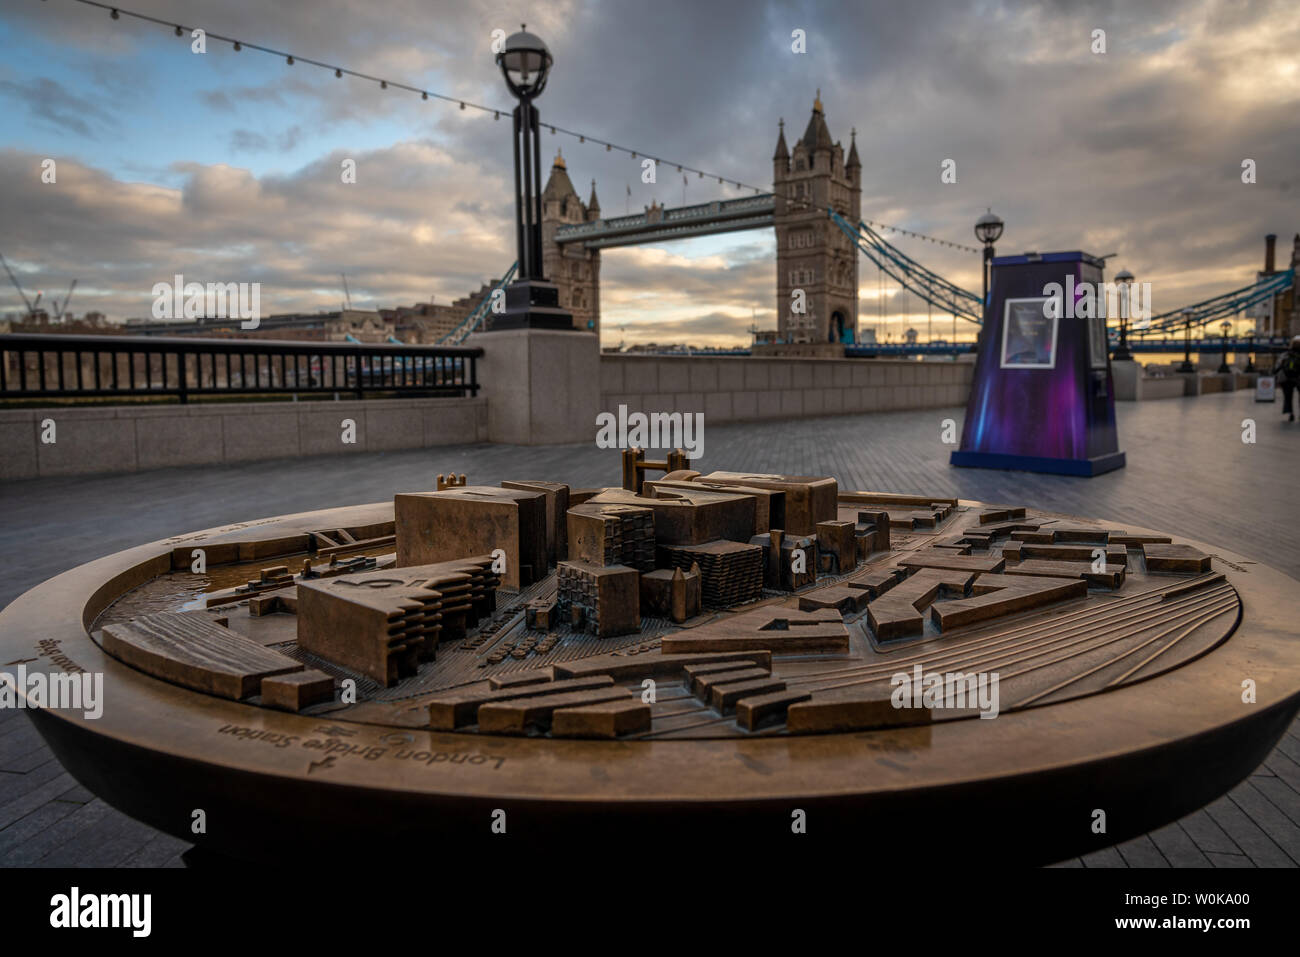 LONDON, ENGLAND, DECEMBER 10th, 2018: Tower Bridge in London, United Kingdom. Sunrise with beautiful clouds and model of nearby tourist area. English - Stock Image